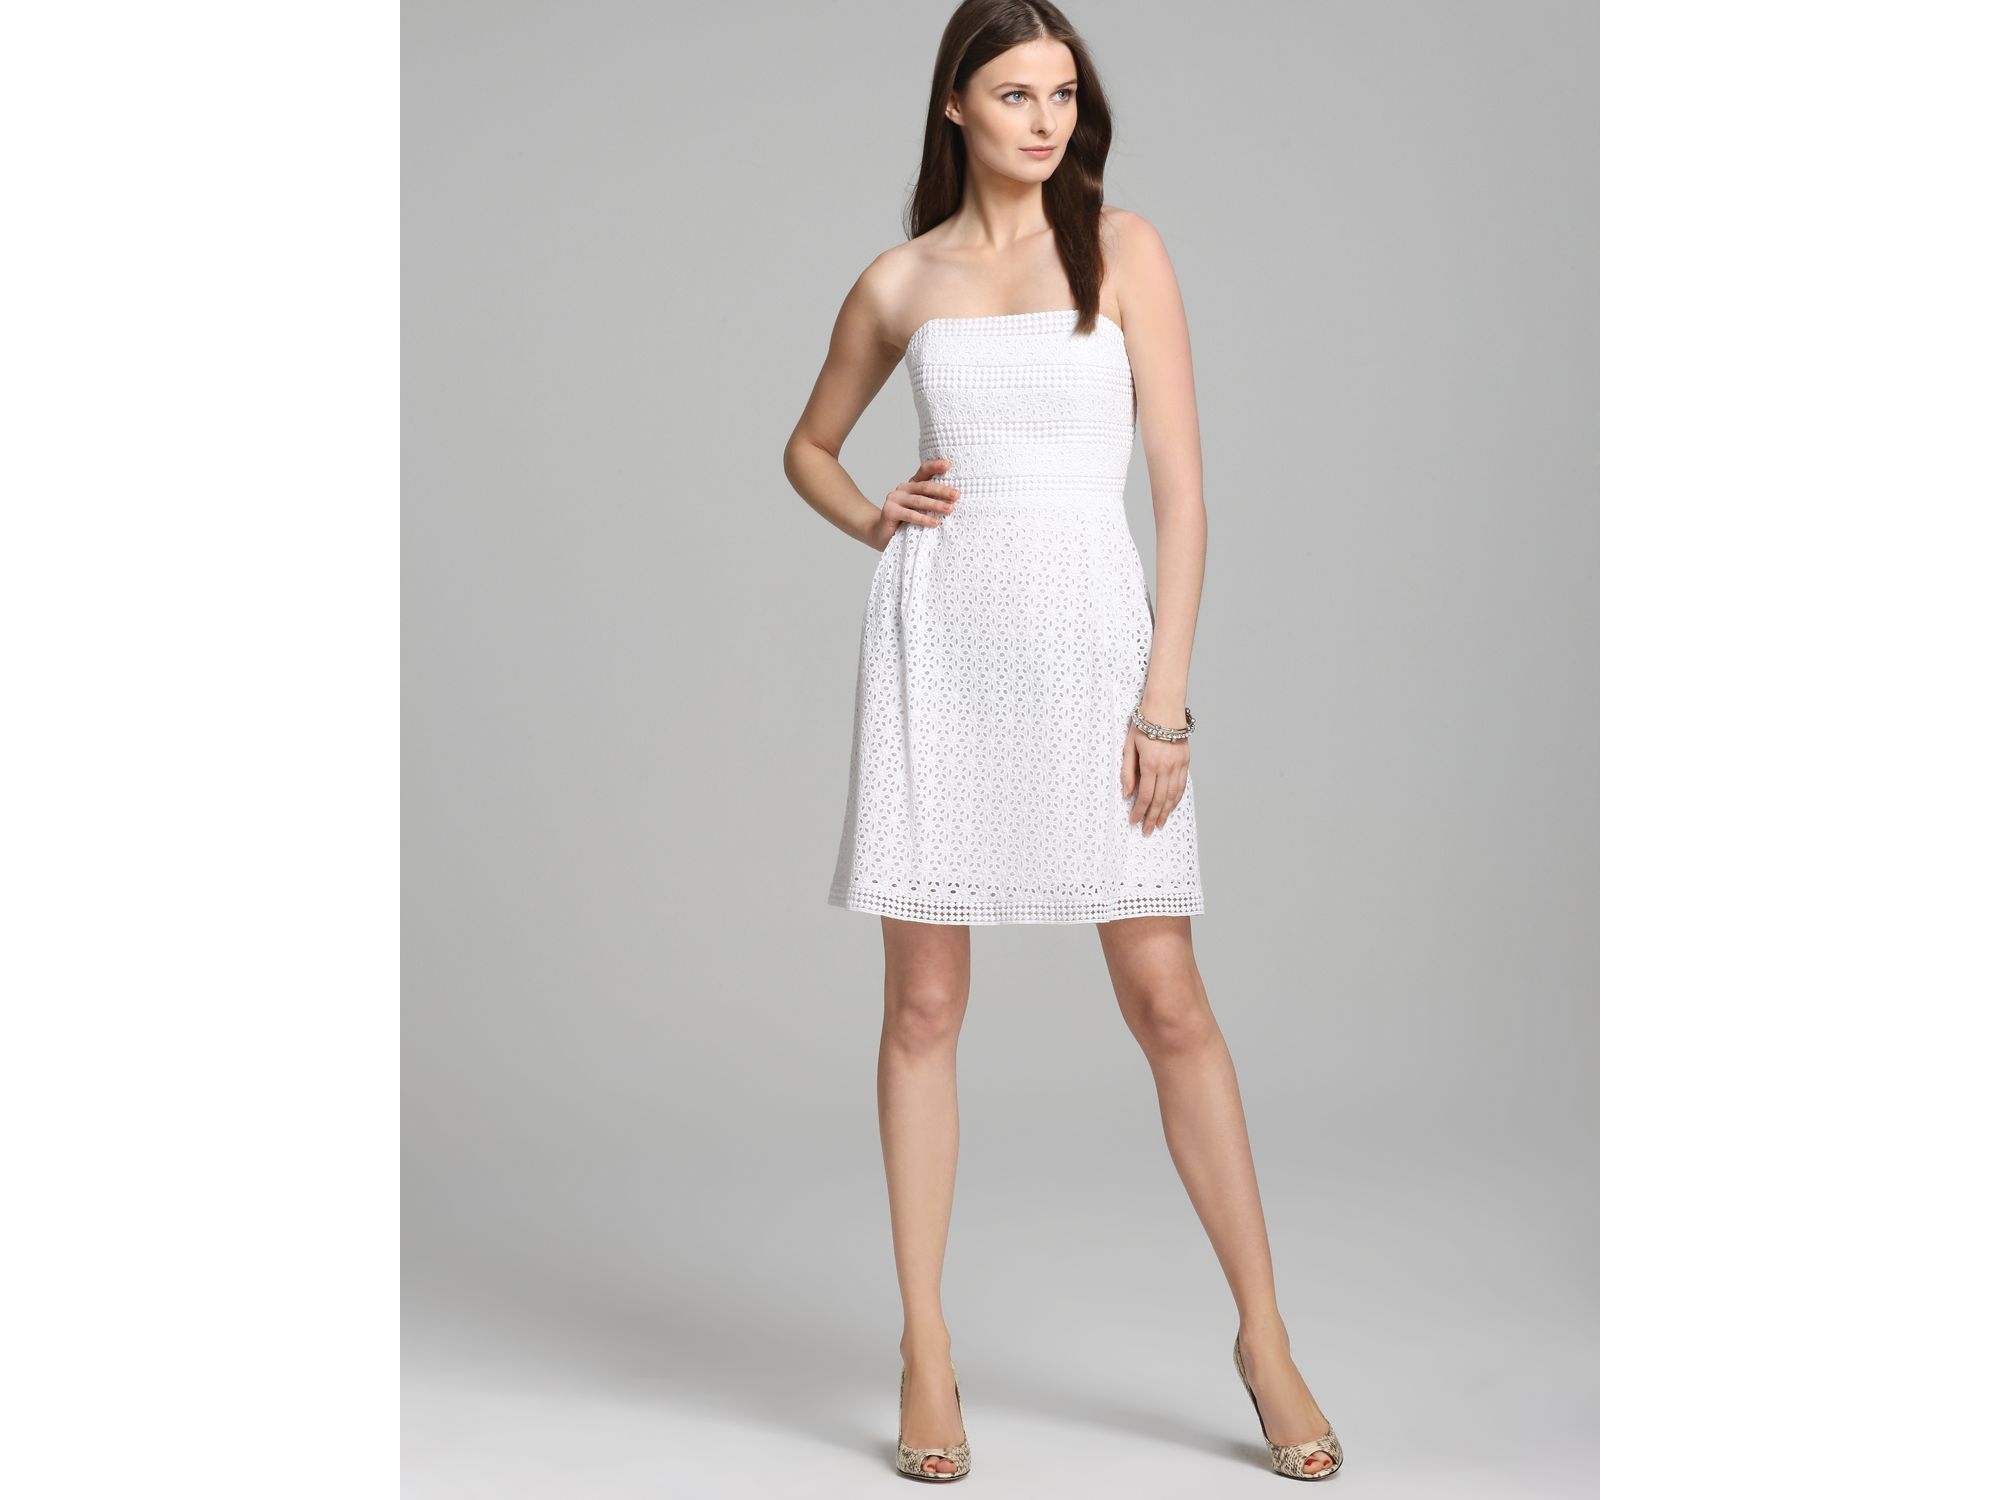 Laundry by shelli segal Strapless Dress Eyelet Fit Flare in White ...